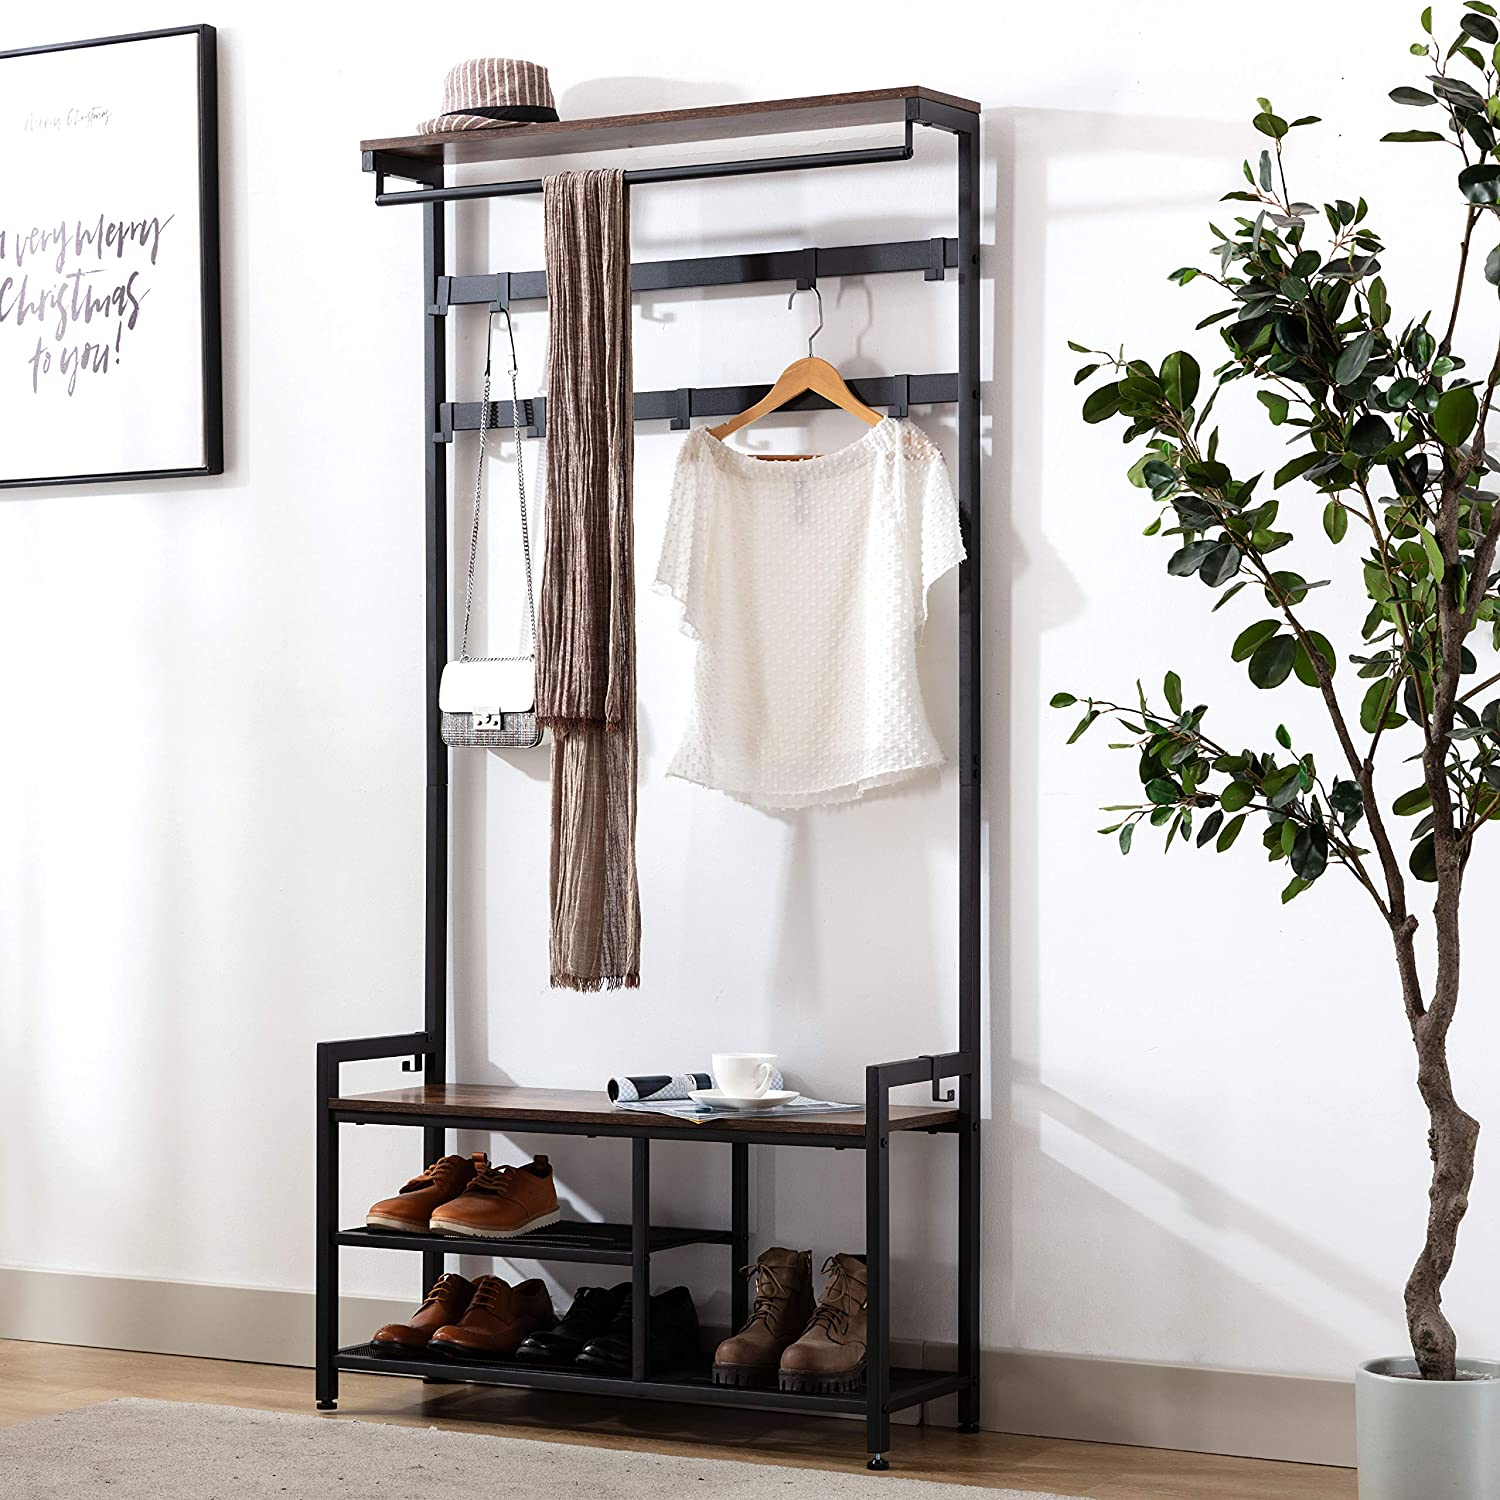 Entryway Storage Shelf Wood Look Accent Furniture with Metal Frame and Hanging Hooks Coat Rack Shoe Bench Industrial Hall Tree